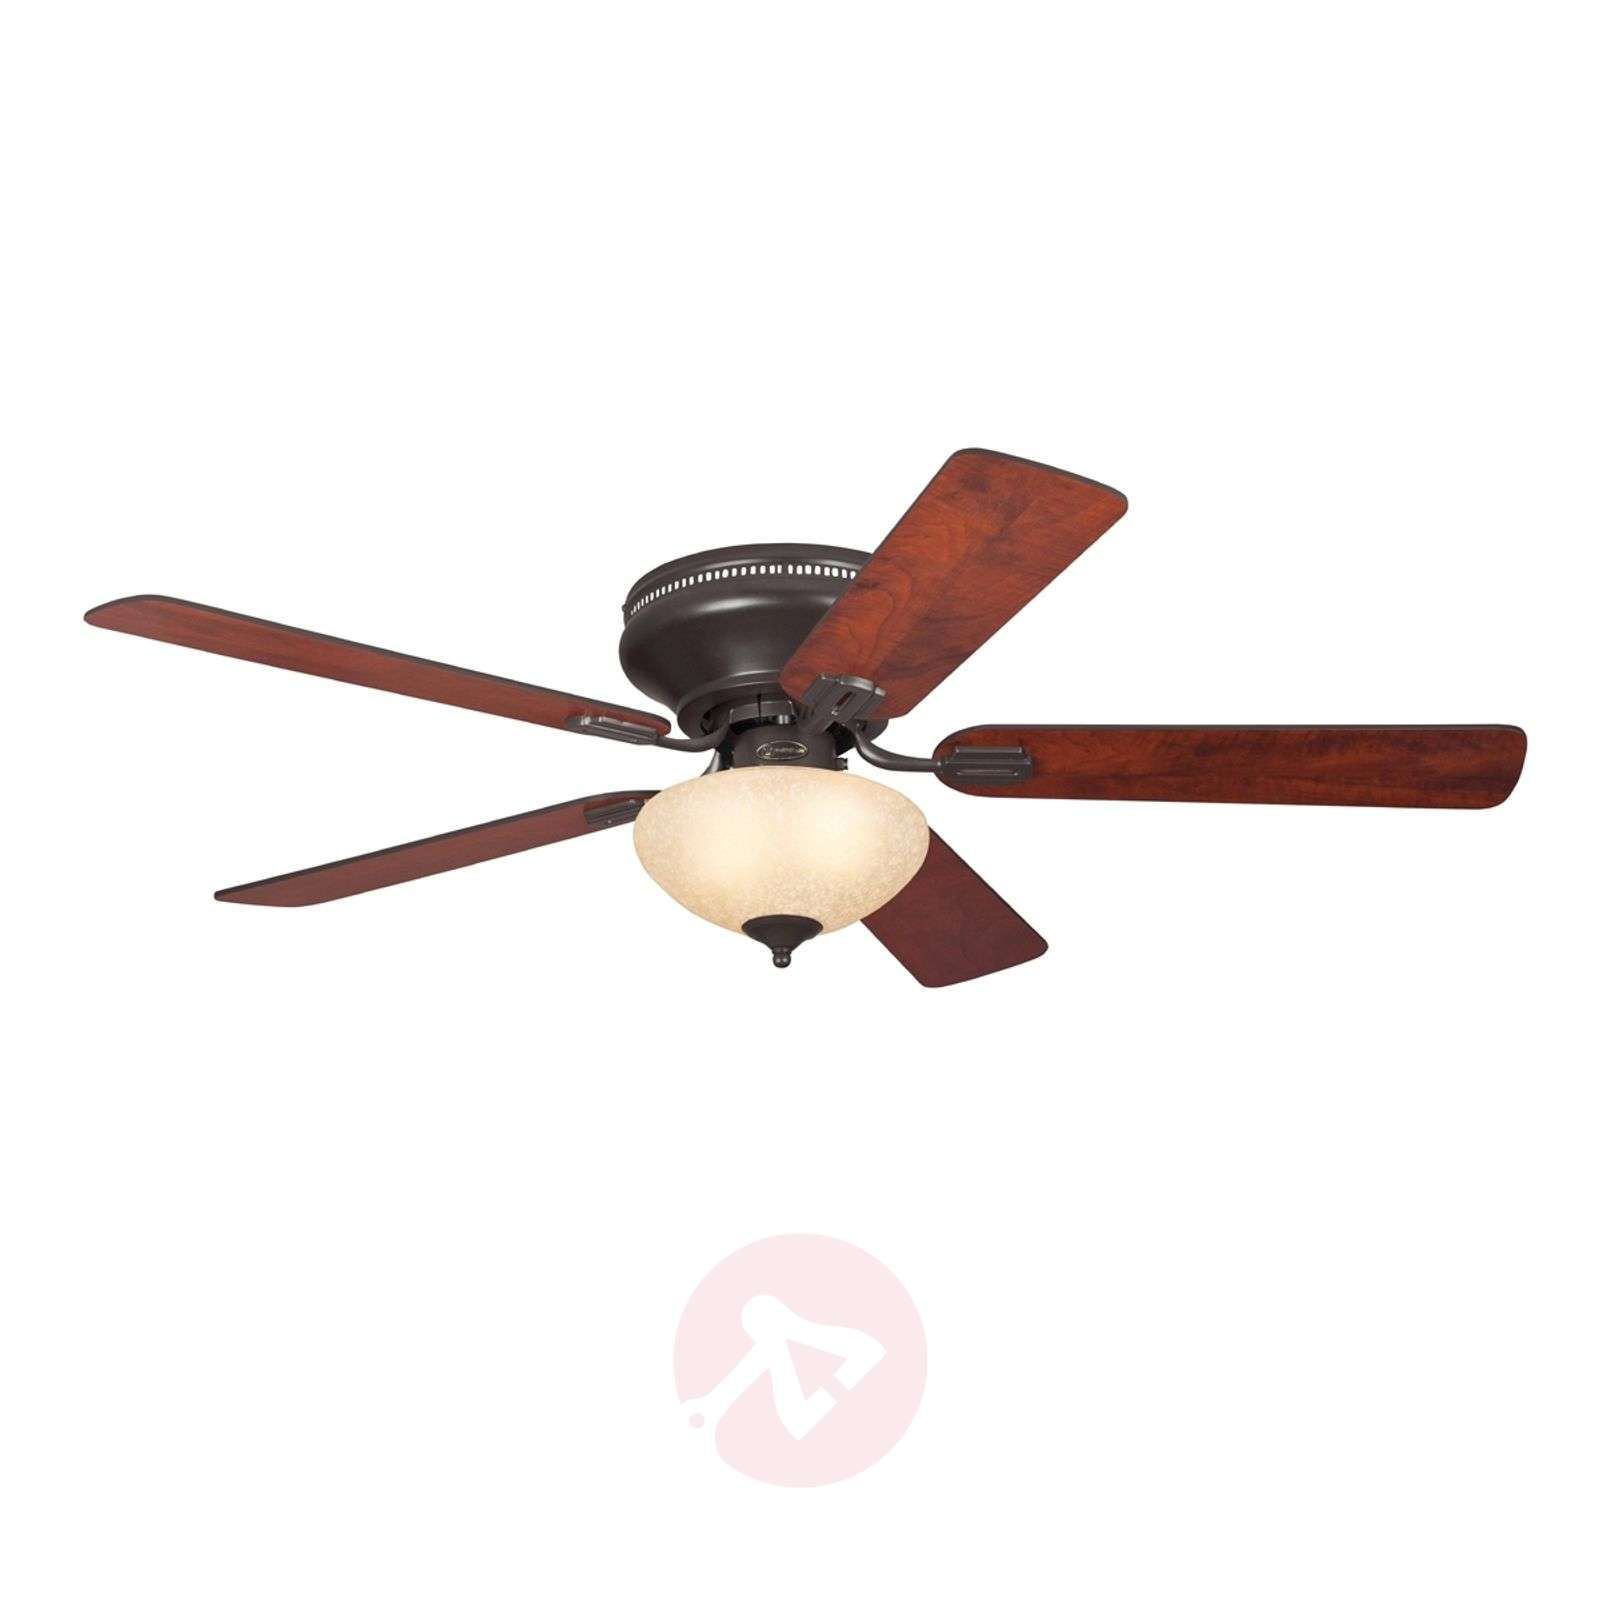 Everett rustic ceiling fan with light-9602239-014